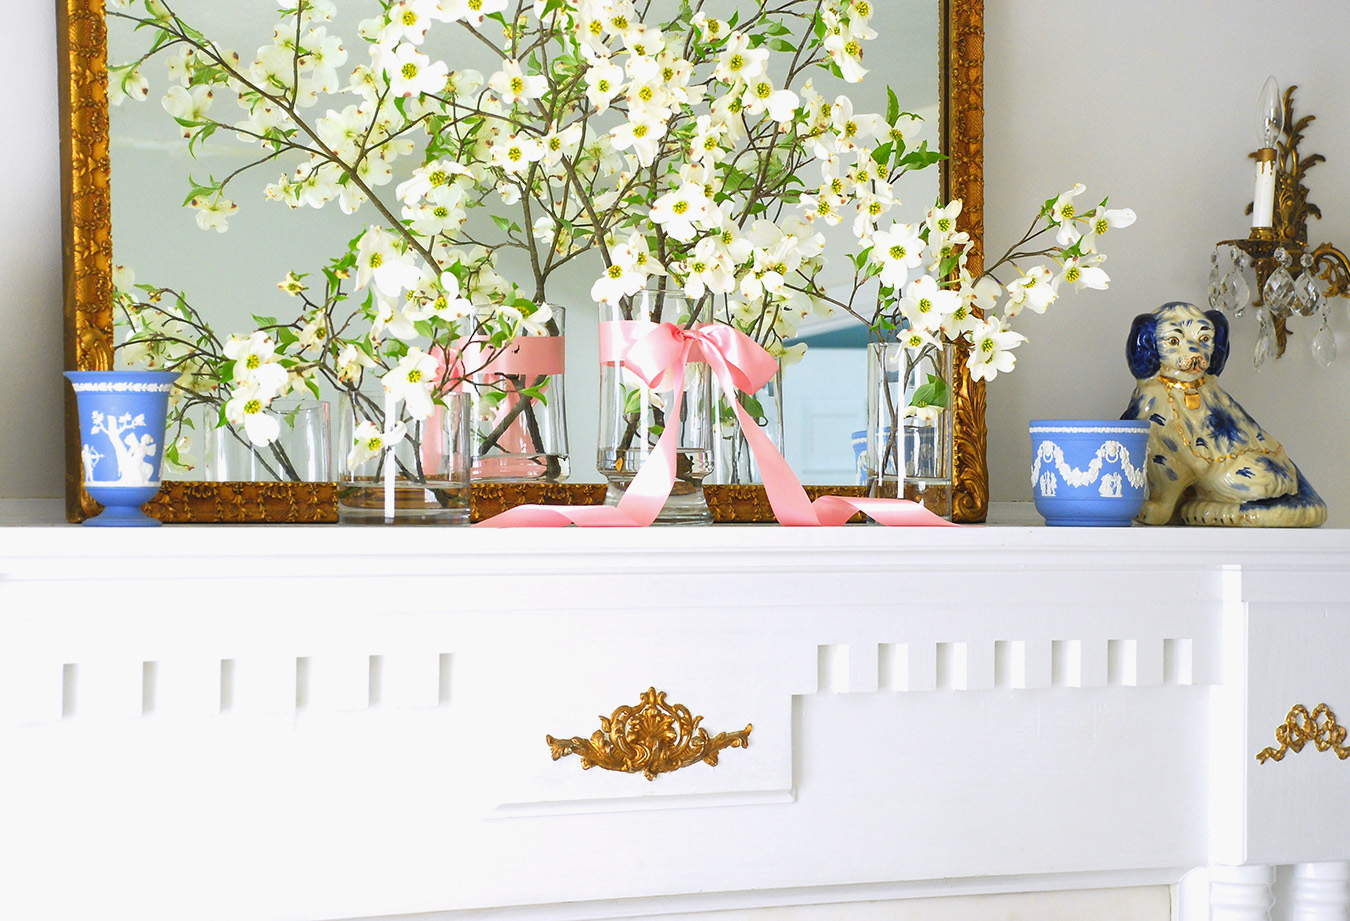 Bring spring inside with fresh dogwood blooms for a stunningly simple spring mantle.